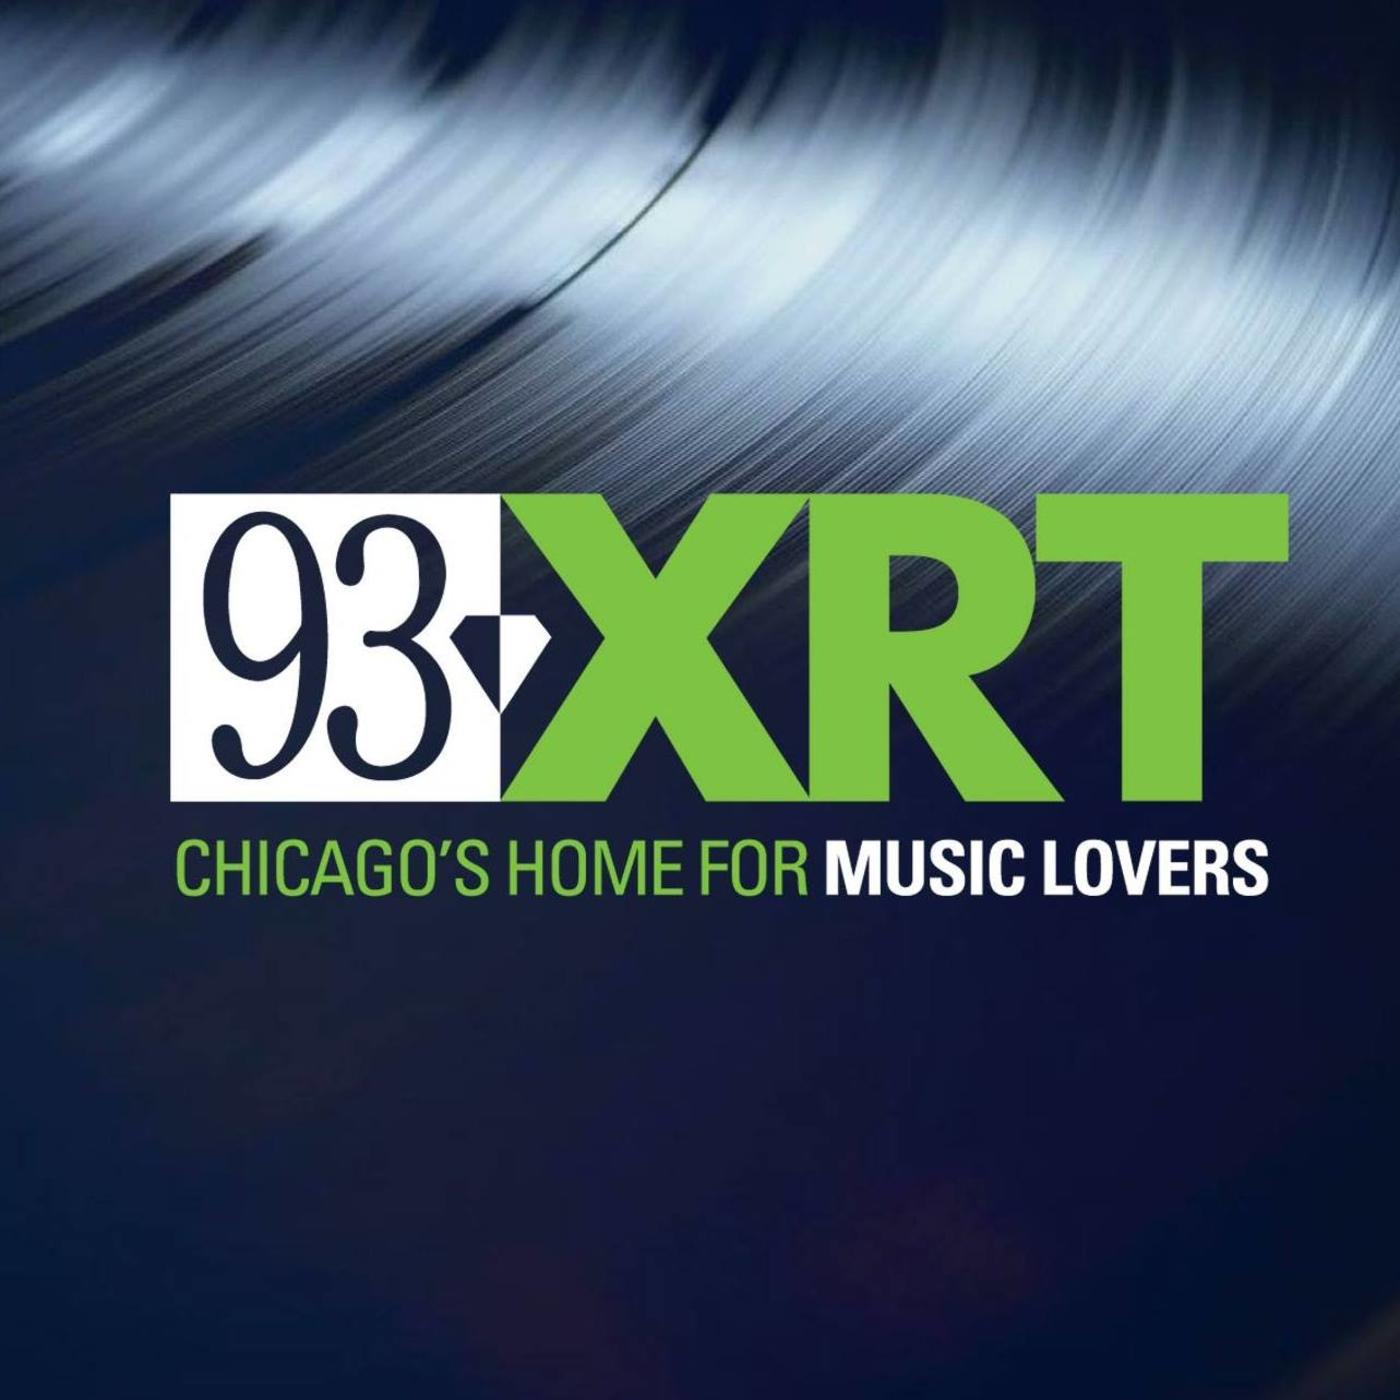 The Morning Show on 93XRT